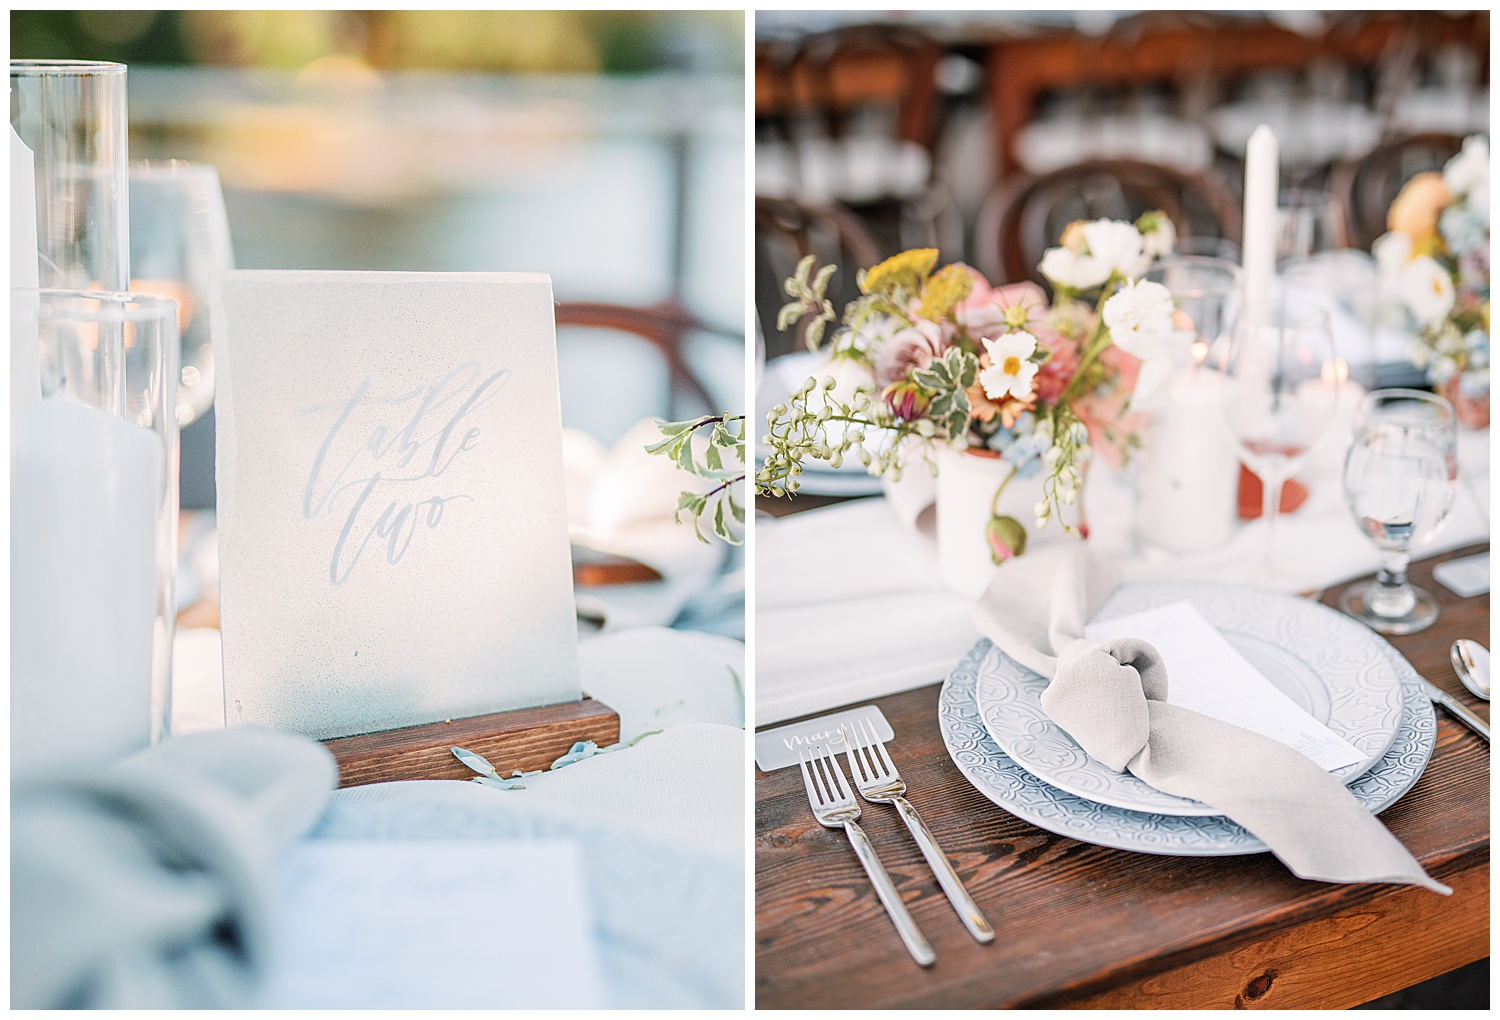 Janine_Licare_Photography_San_Francisco_Wedding_Photographer_Lake_Tahoe_West_Shore_Cafe_Colorful_Summer_0043.jpg